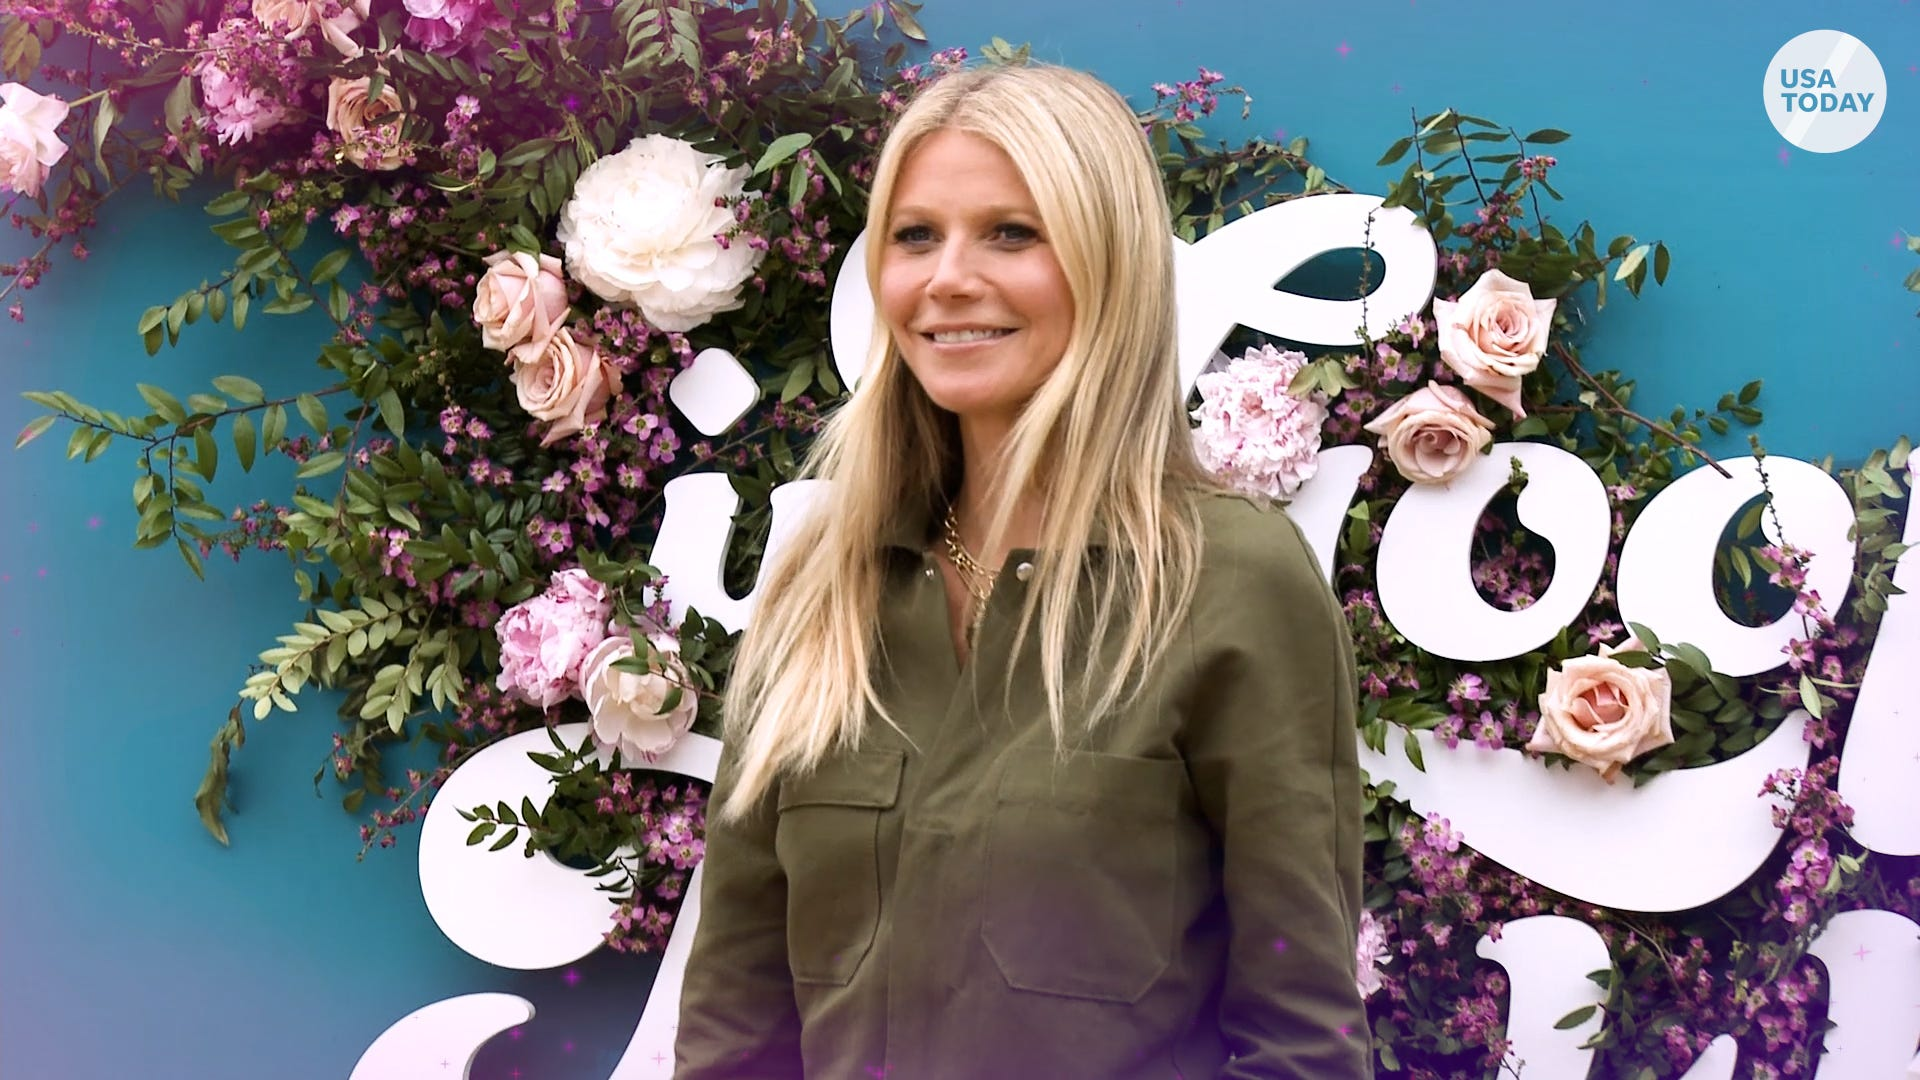 'The shine of acting wore off': Gwyneth Paltrow explains why she moved away from acting